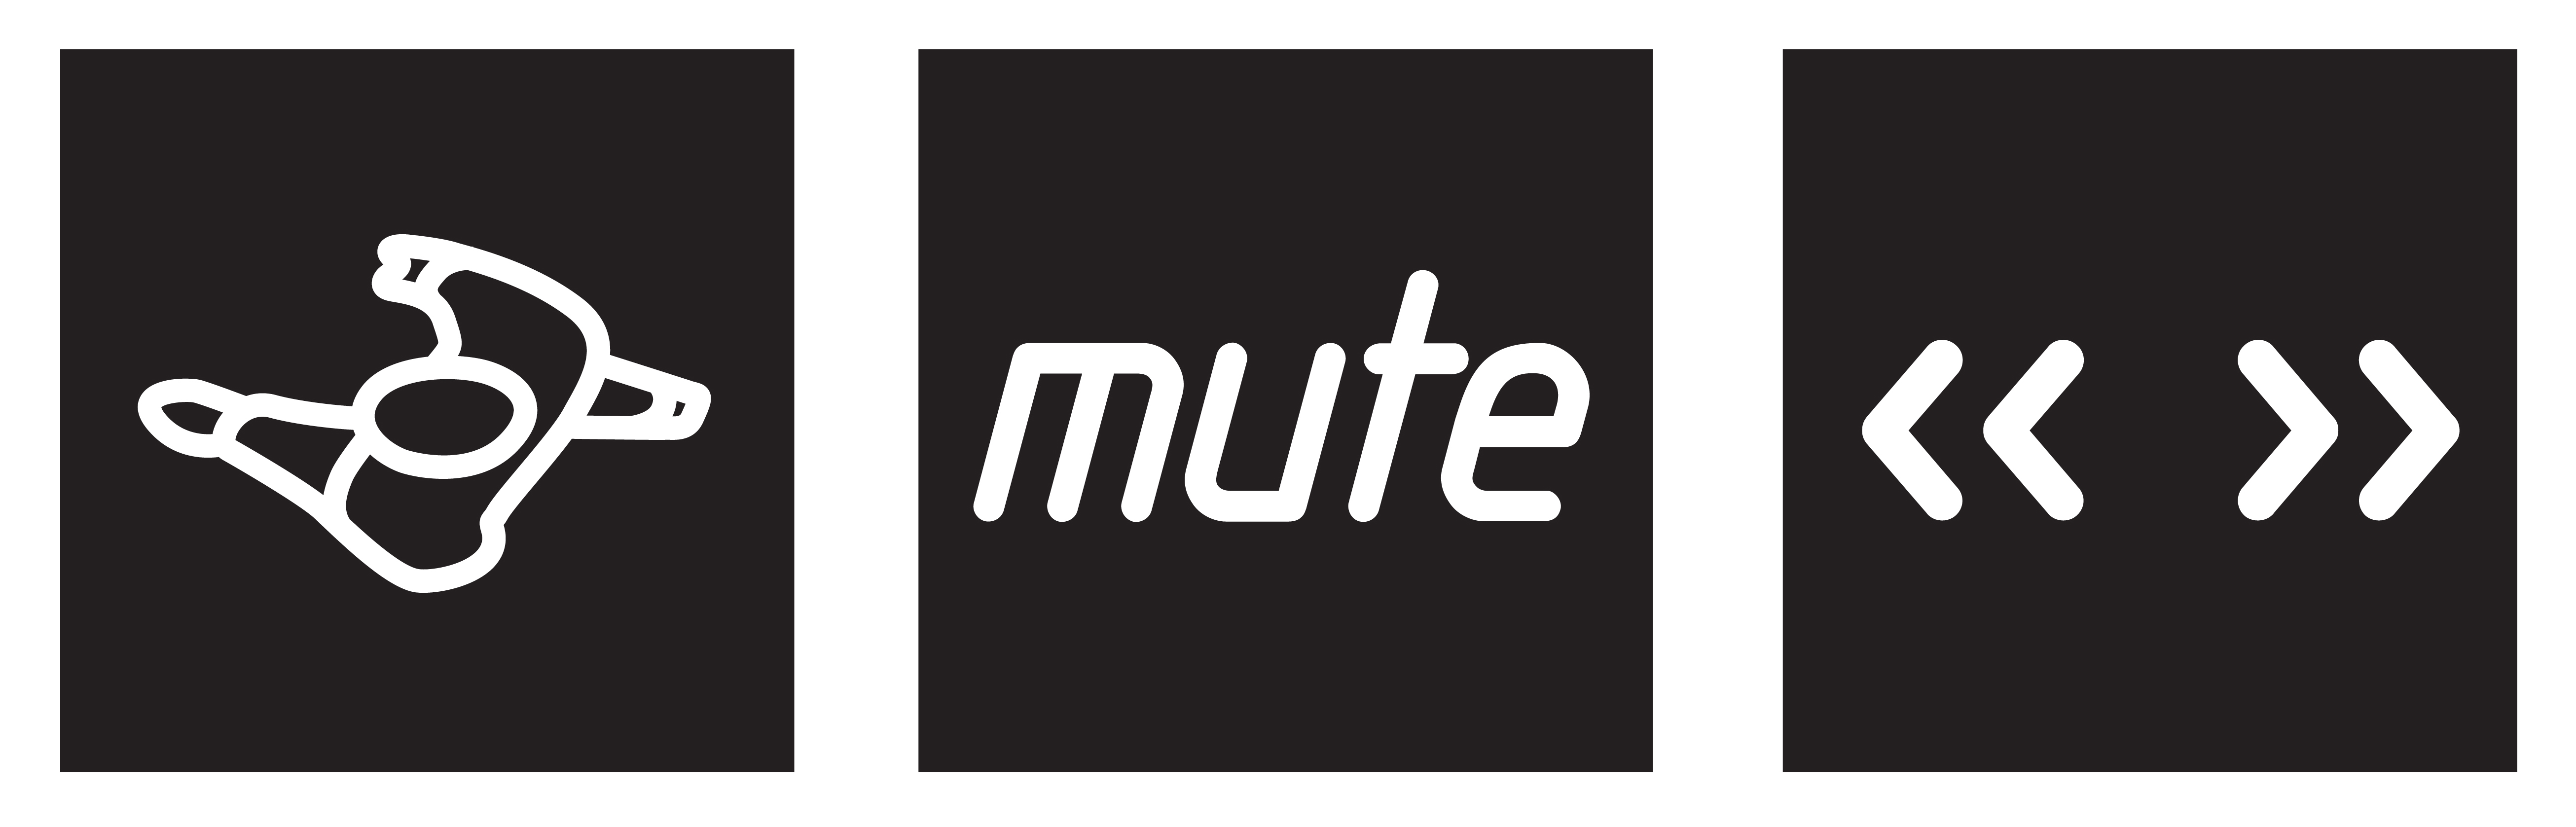 Mute is an independent record label founded in 1978 by Daniel Miller. Mute is home to Goldfrapp, Liars, Moby, M83, The Knife, Fever Ray, Erasure, CAN, Cabaret Voltaire, Laibach, Cold Specks, Moderat,...